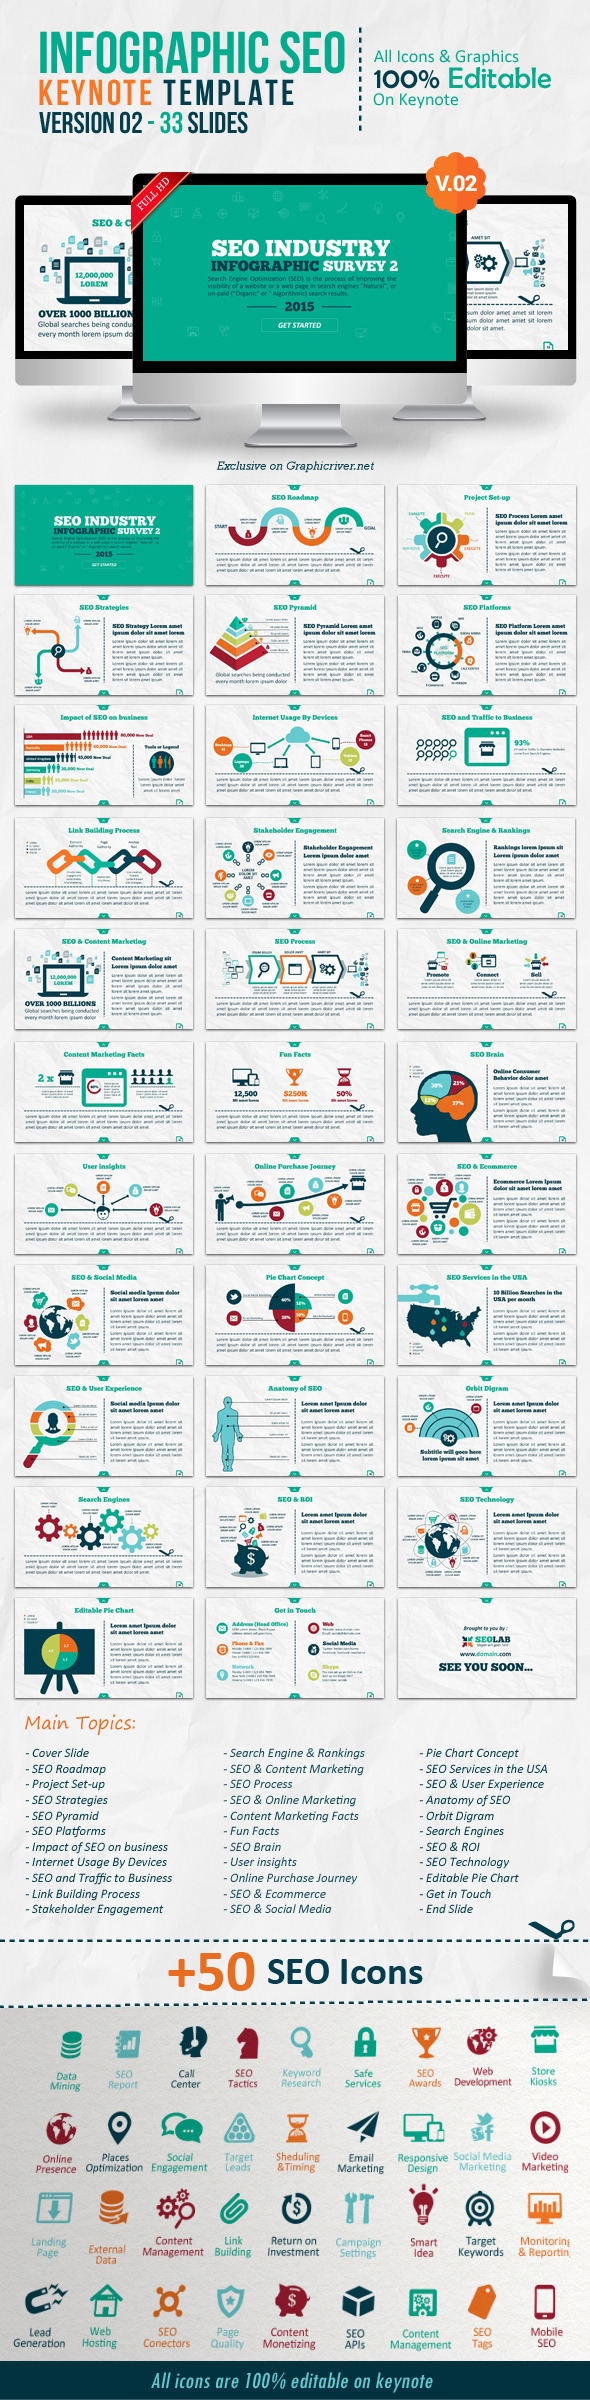 Infographic SEO Keynote V By Kh GraphicRiver - Seo roadmap template